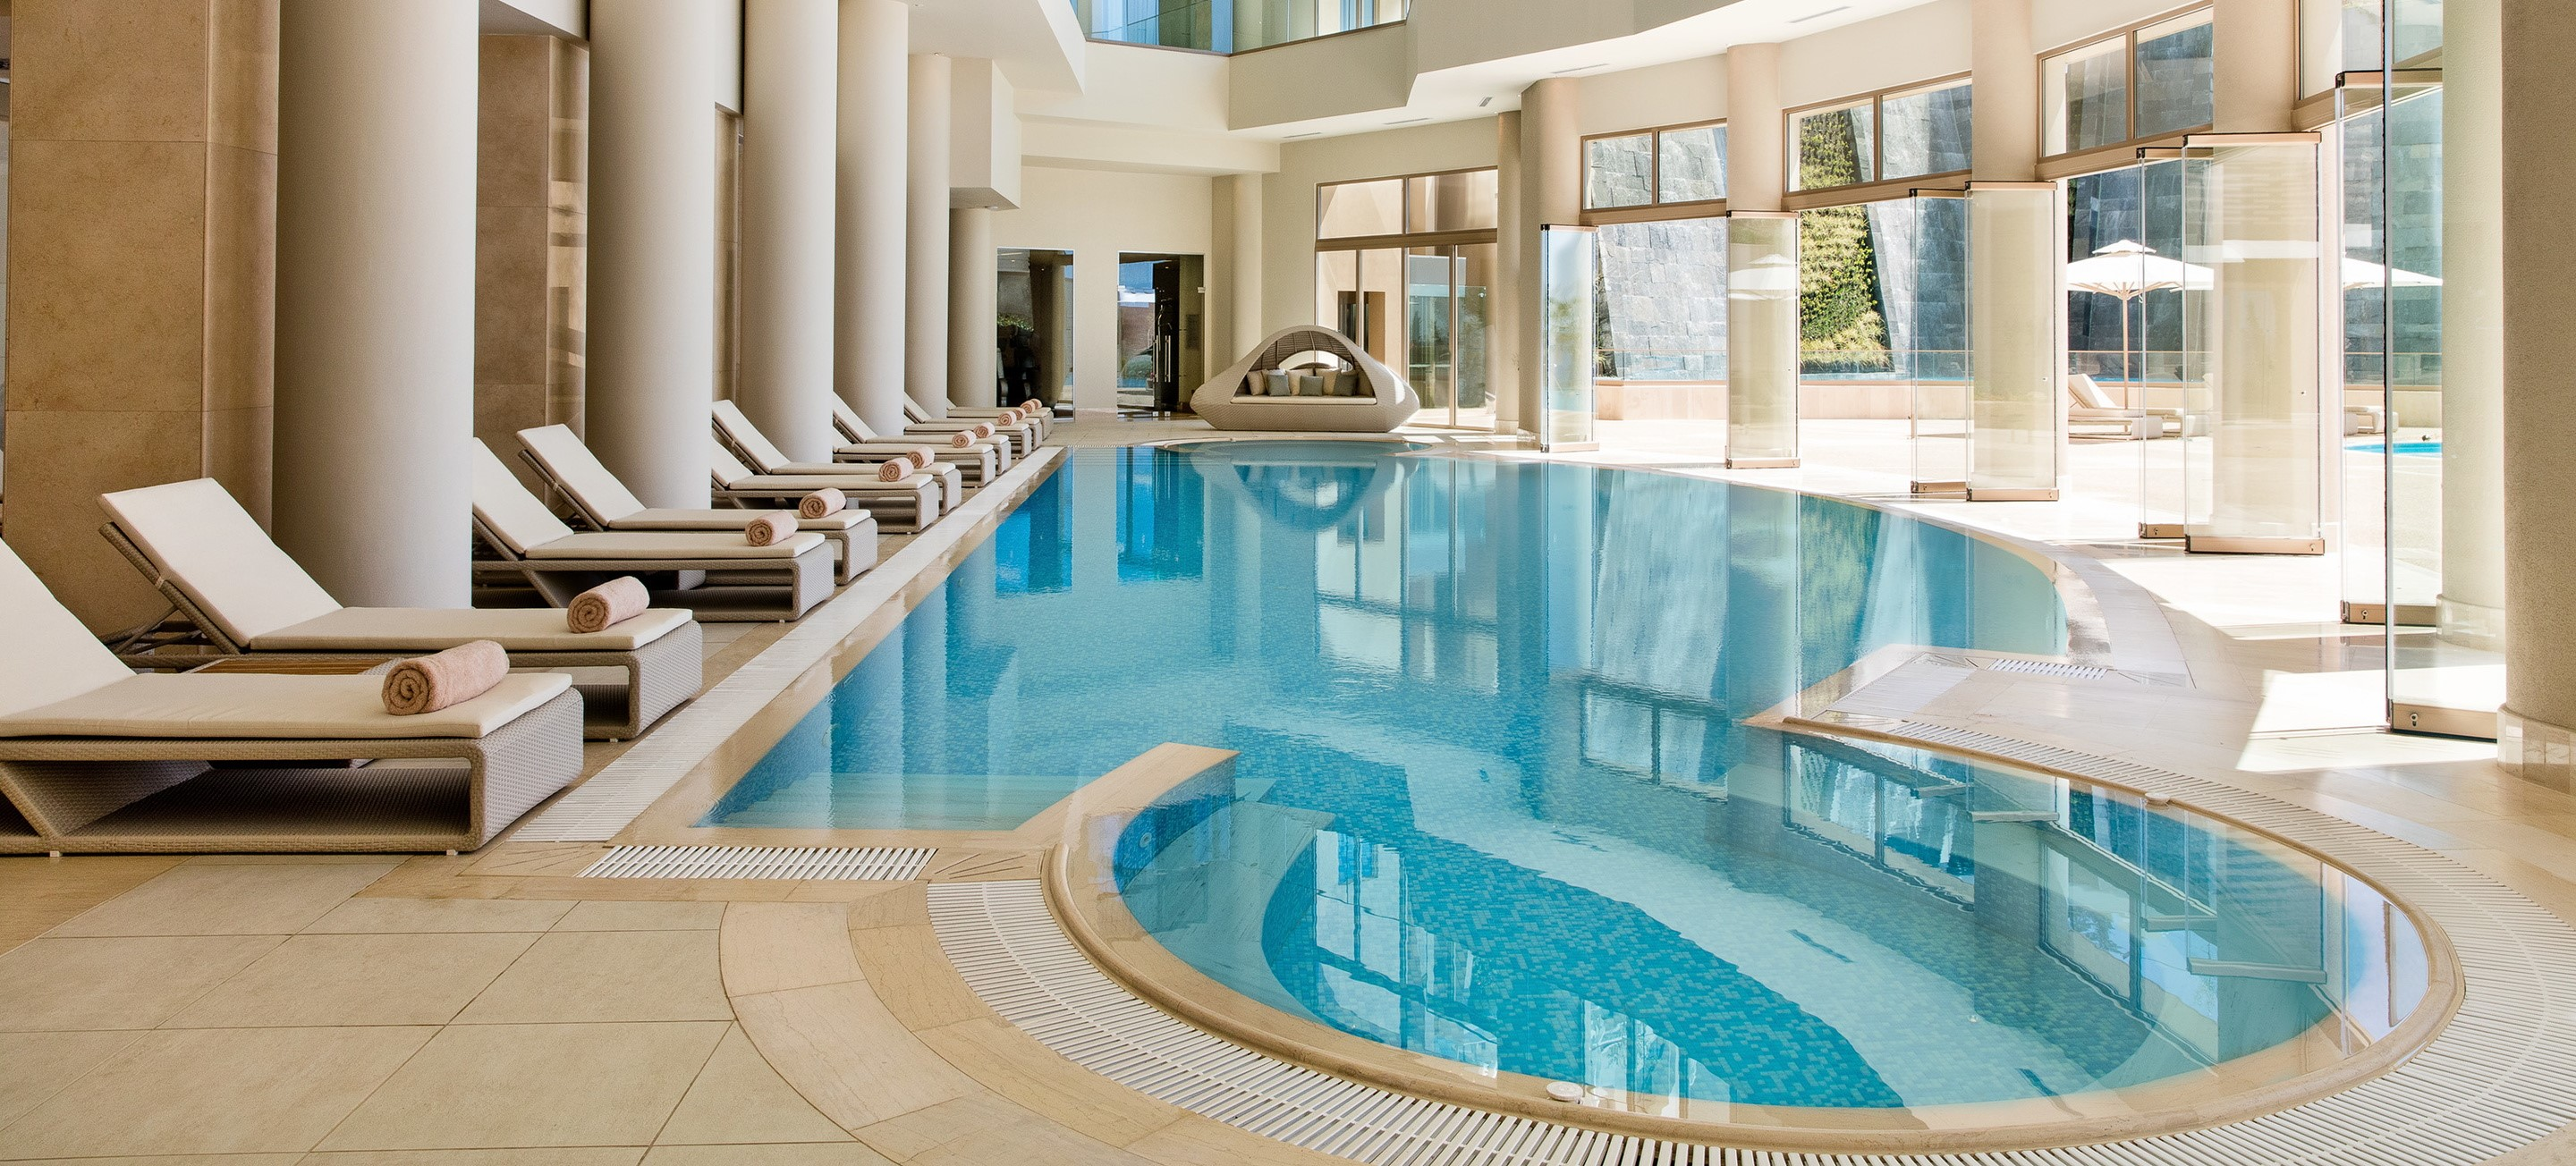 ikos-oceania-indoor-spa-pool